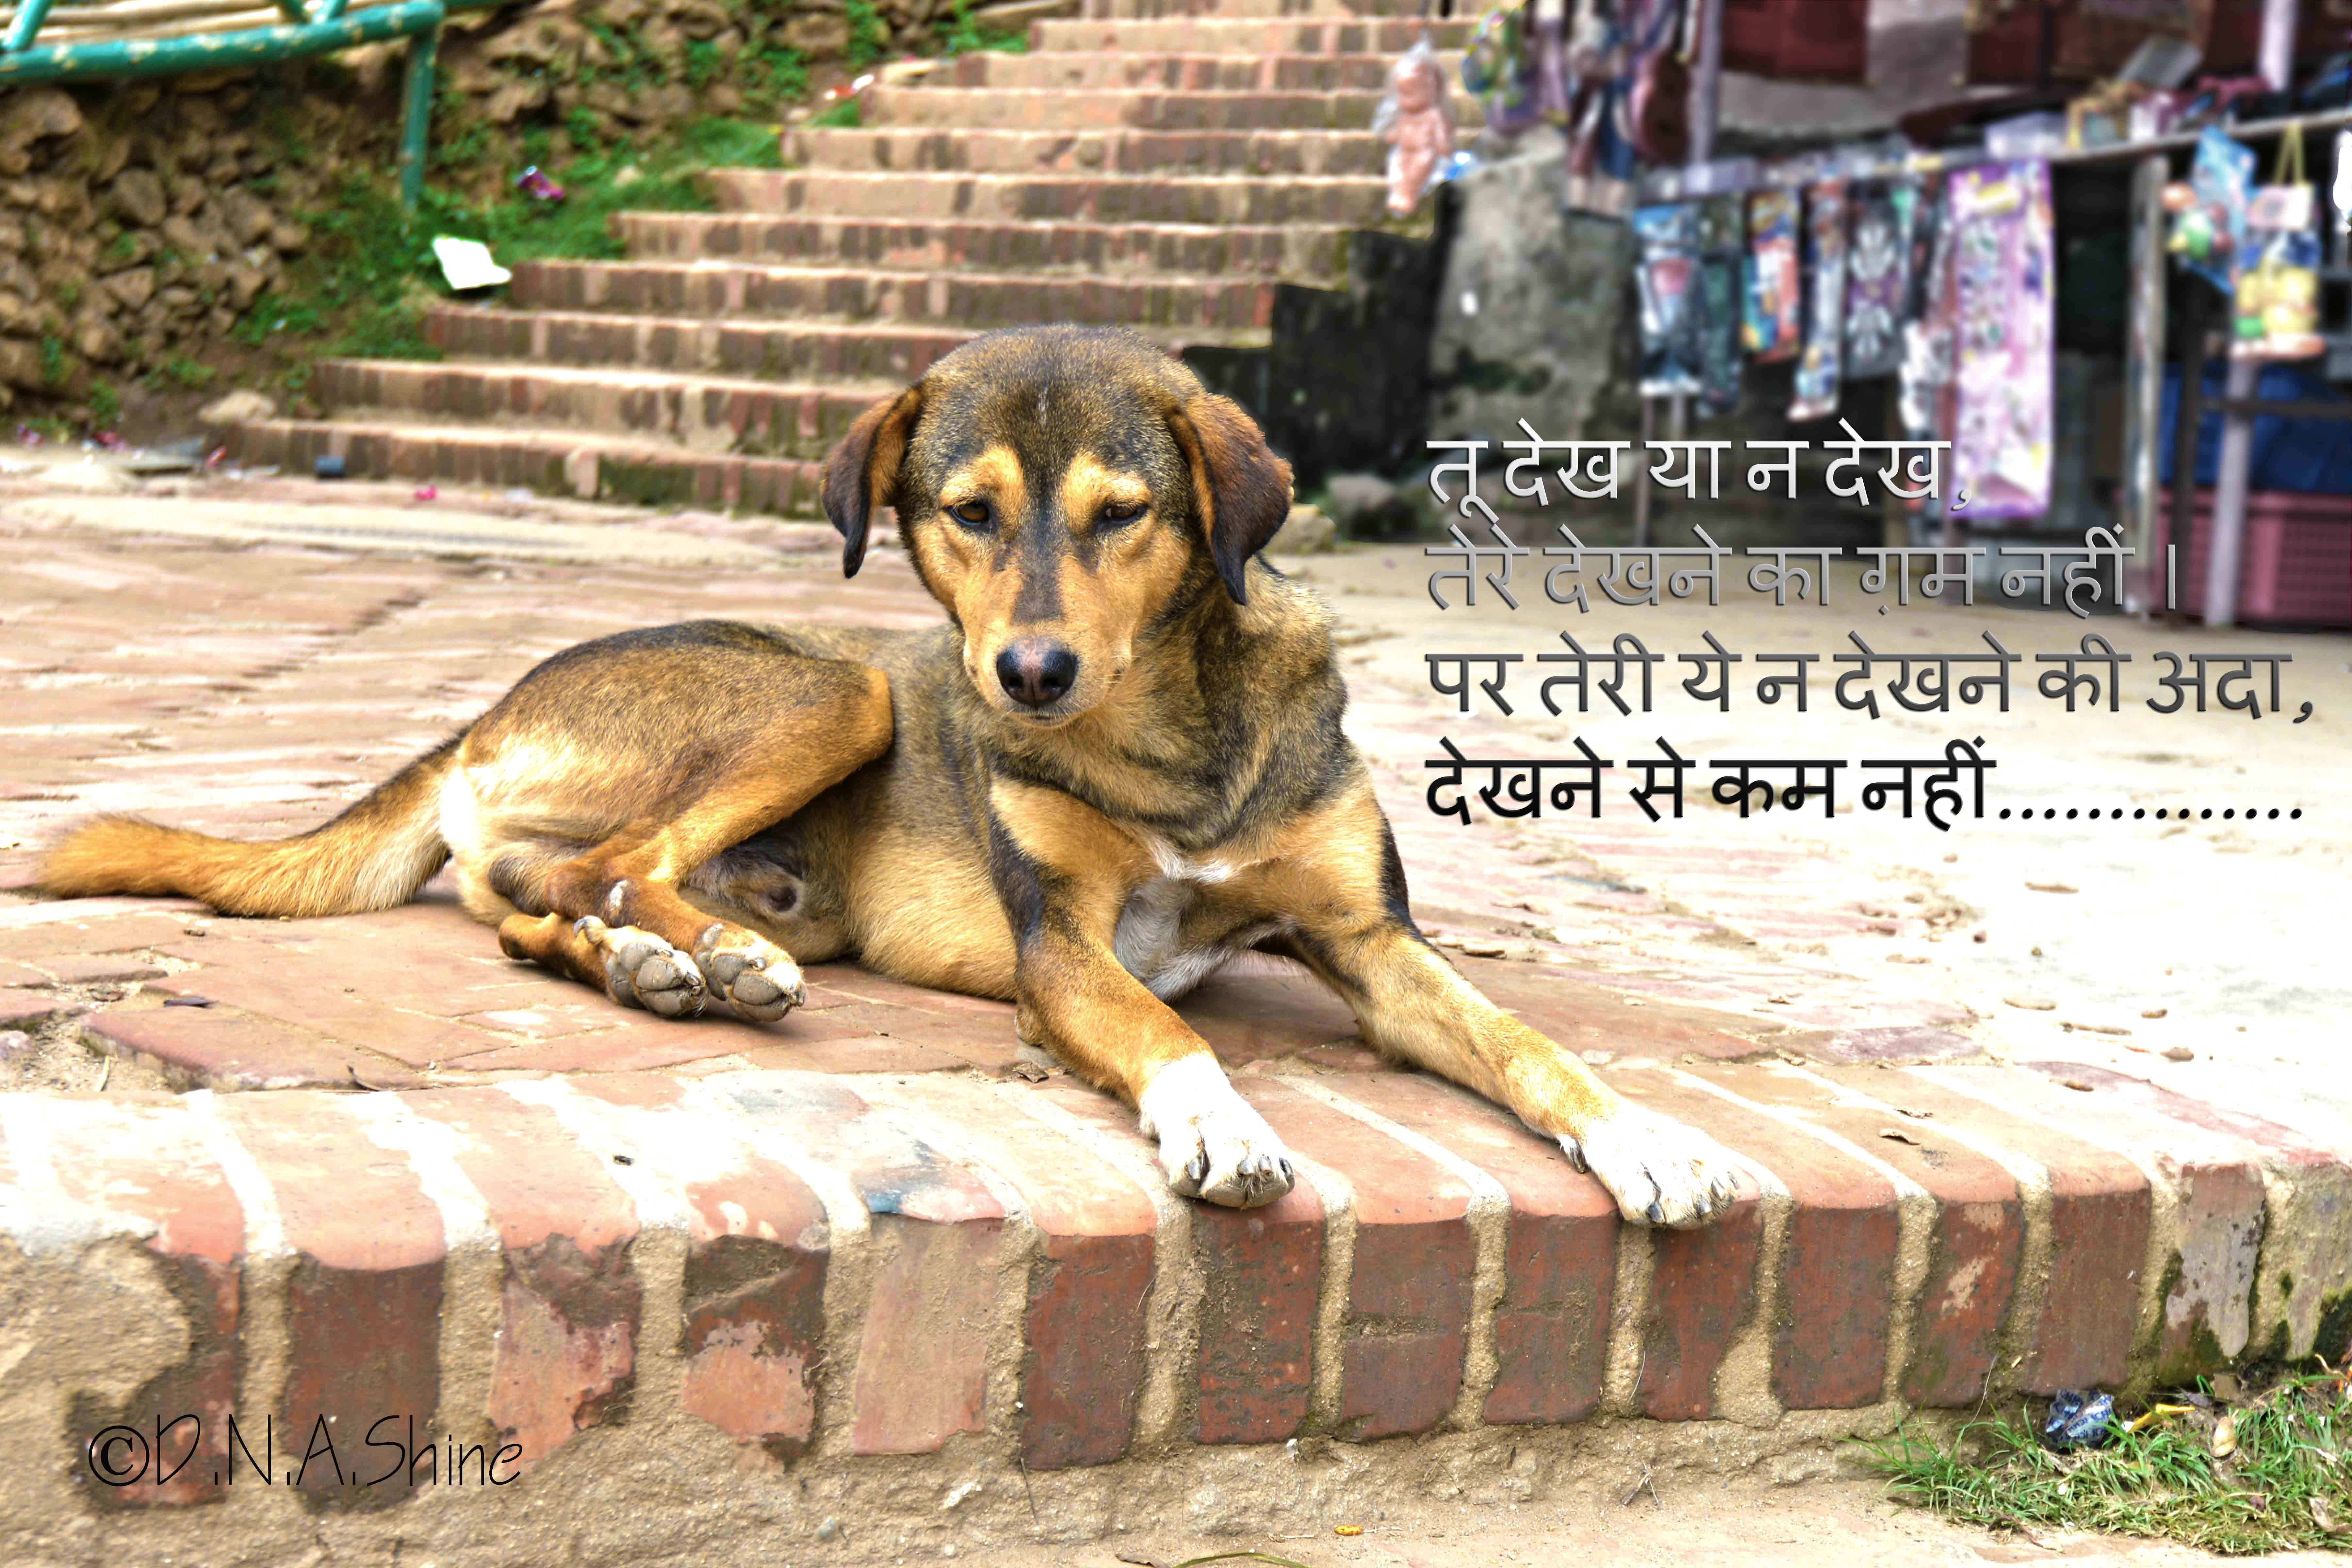 014 Essay Example On Love For Animals In Hindi Fascinating Towards And Birds